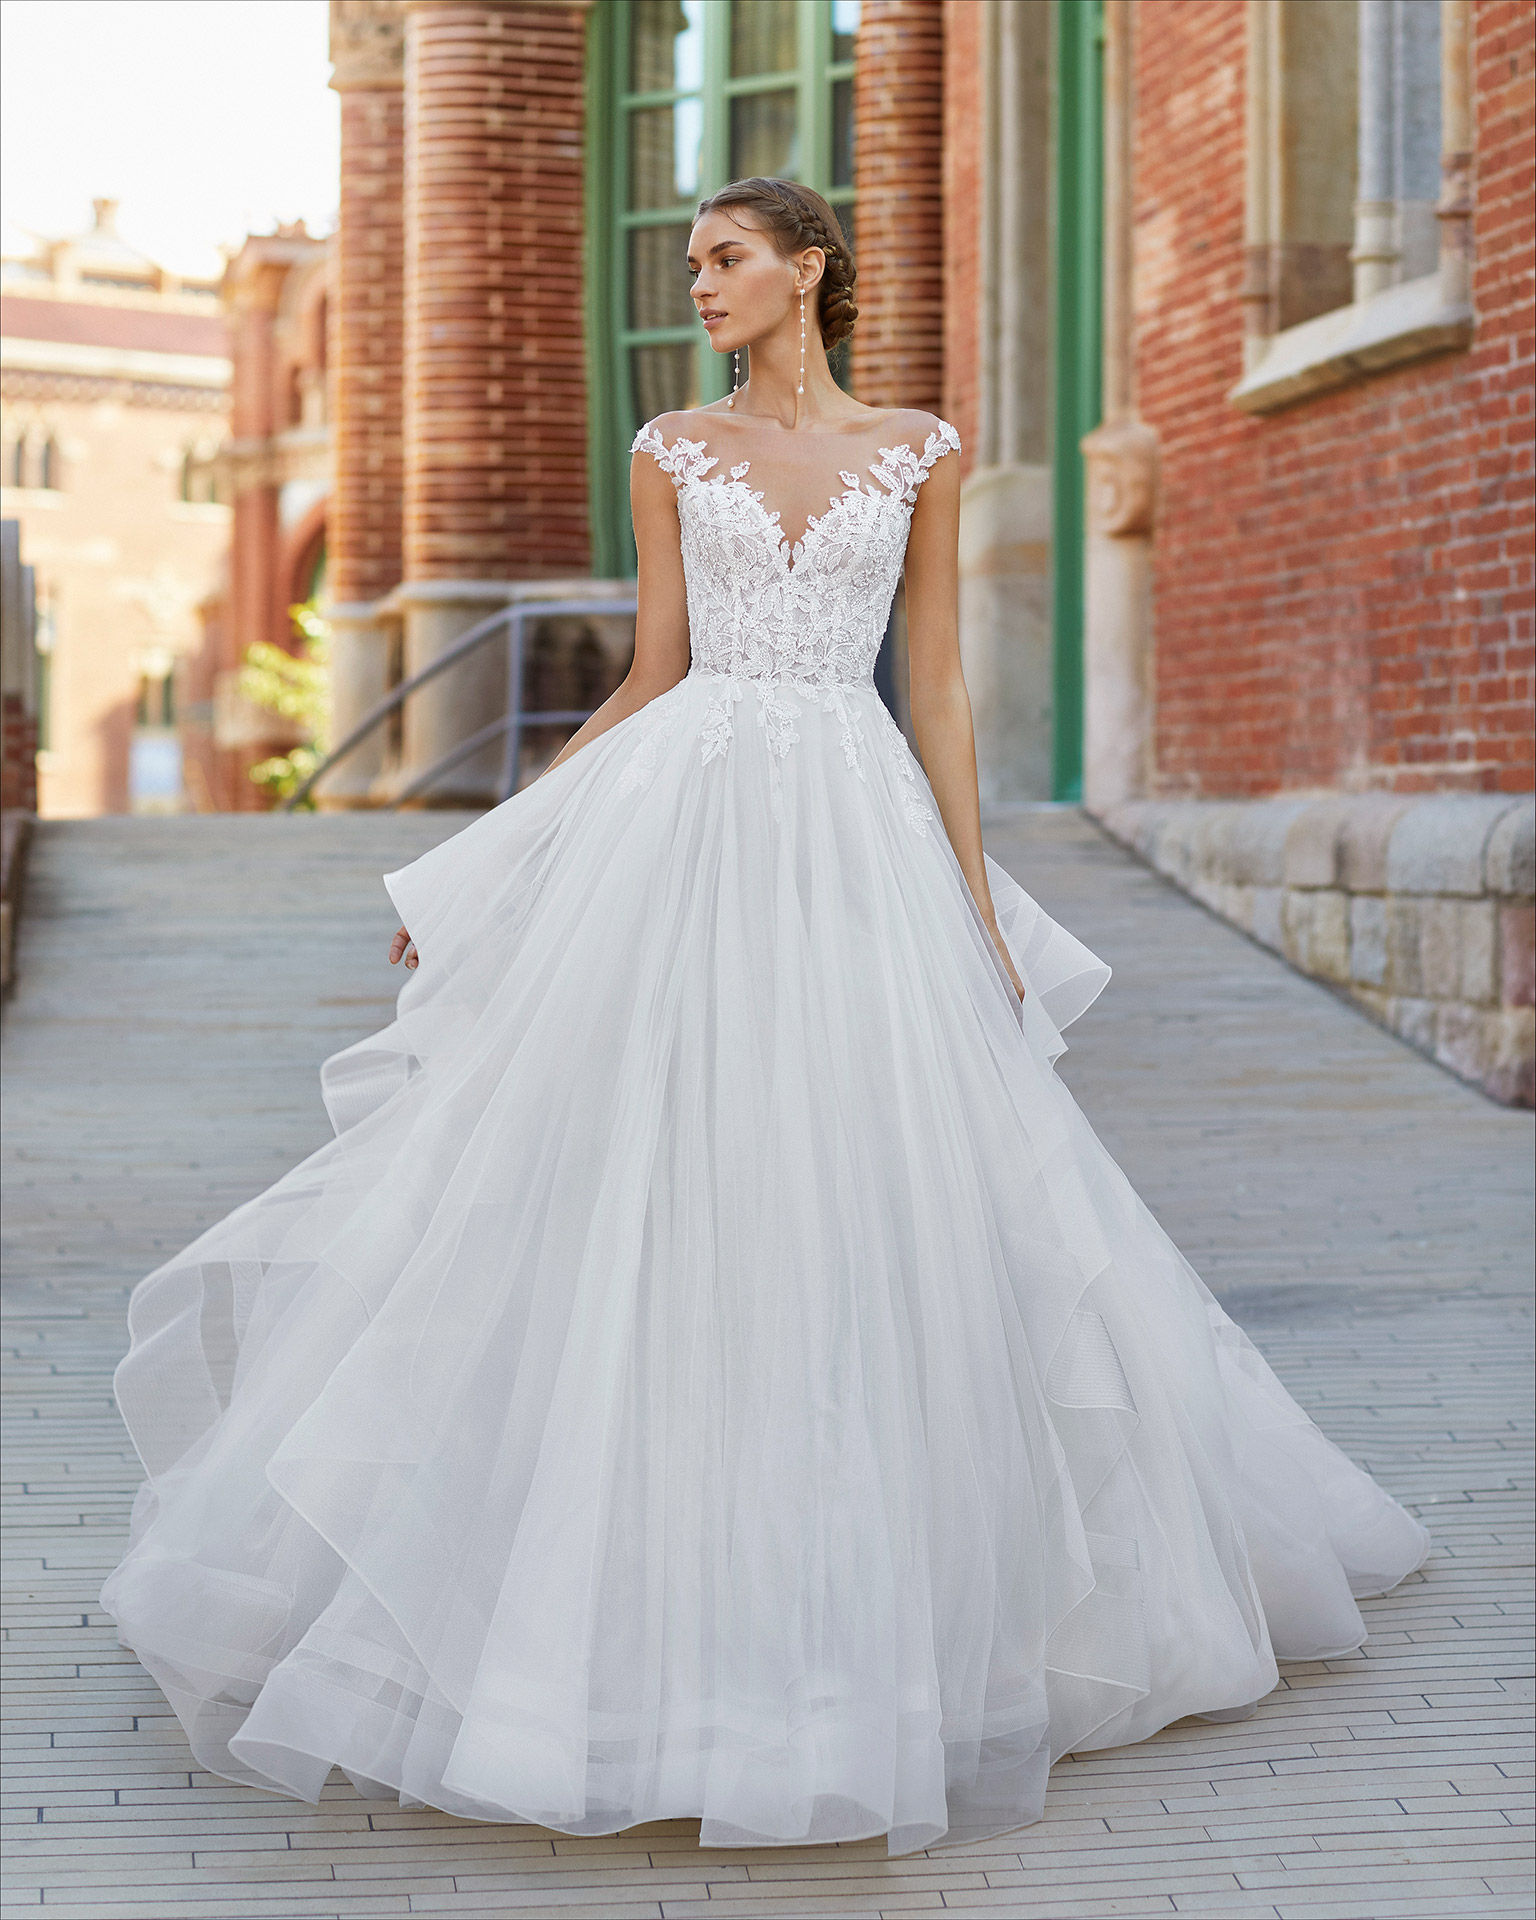 Ballgown-style wedding dress in tulle and lace. Sweetheart neckline with yoke. 2021  Collection.